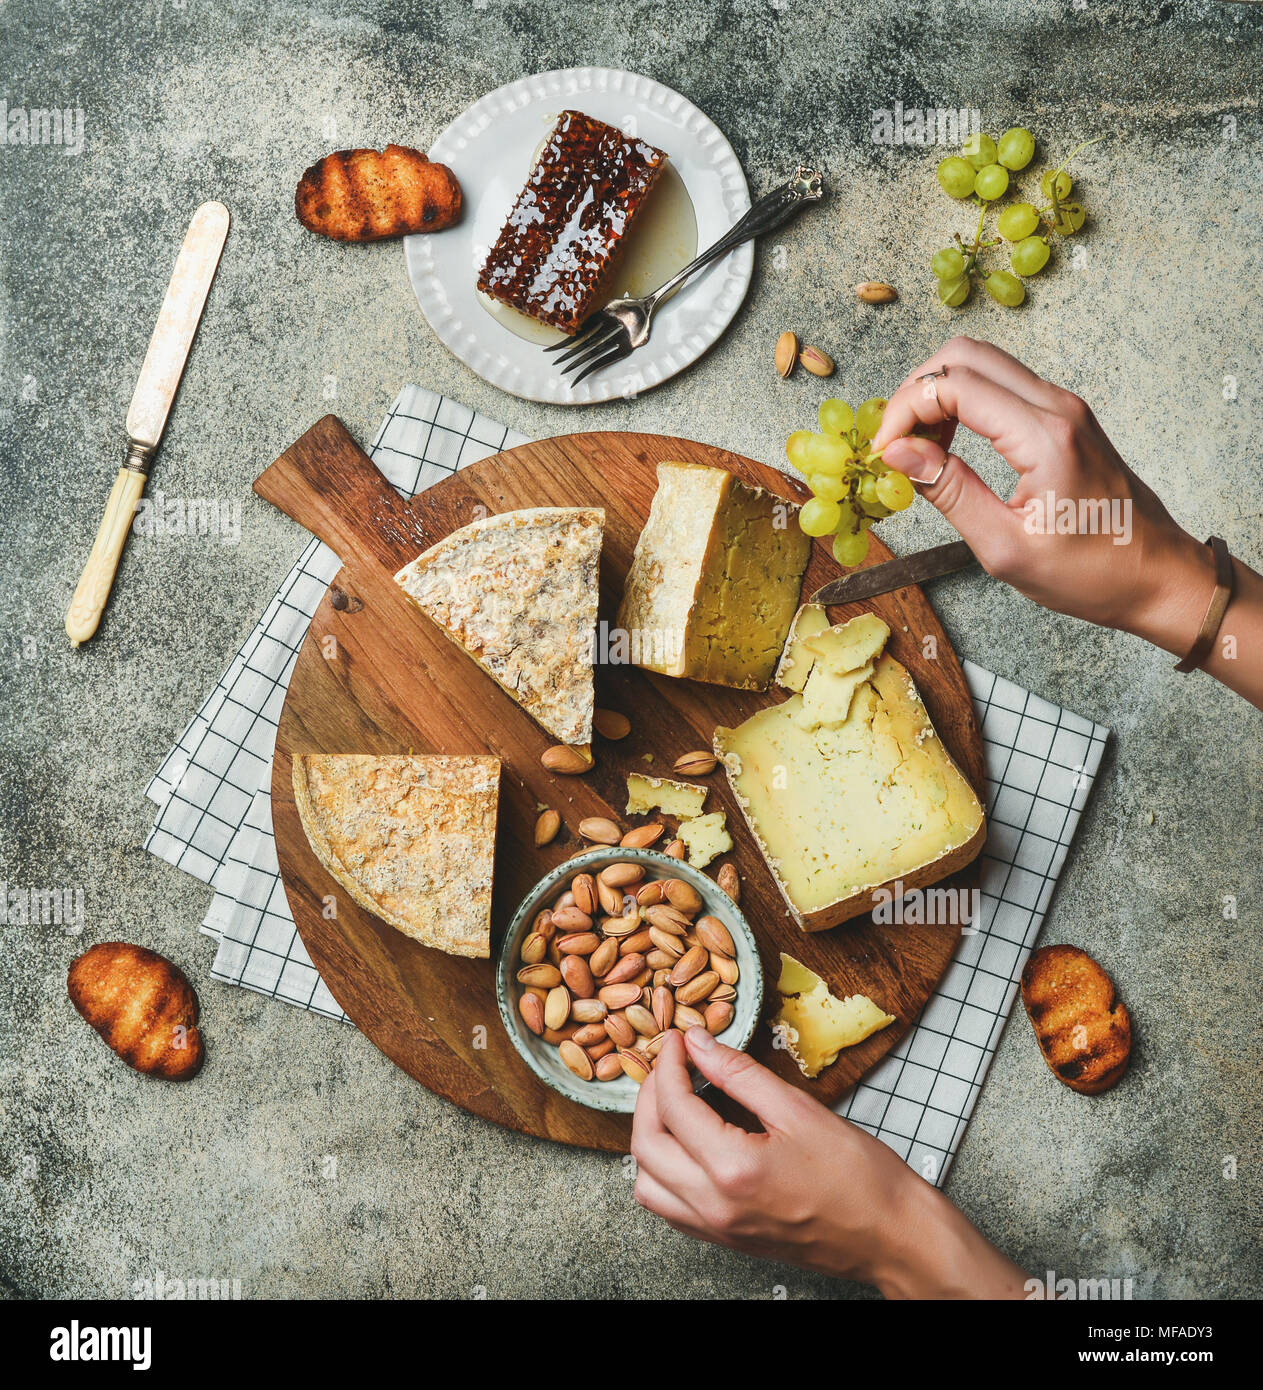 Cheese platter with female hands reaching to food - Stock Image